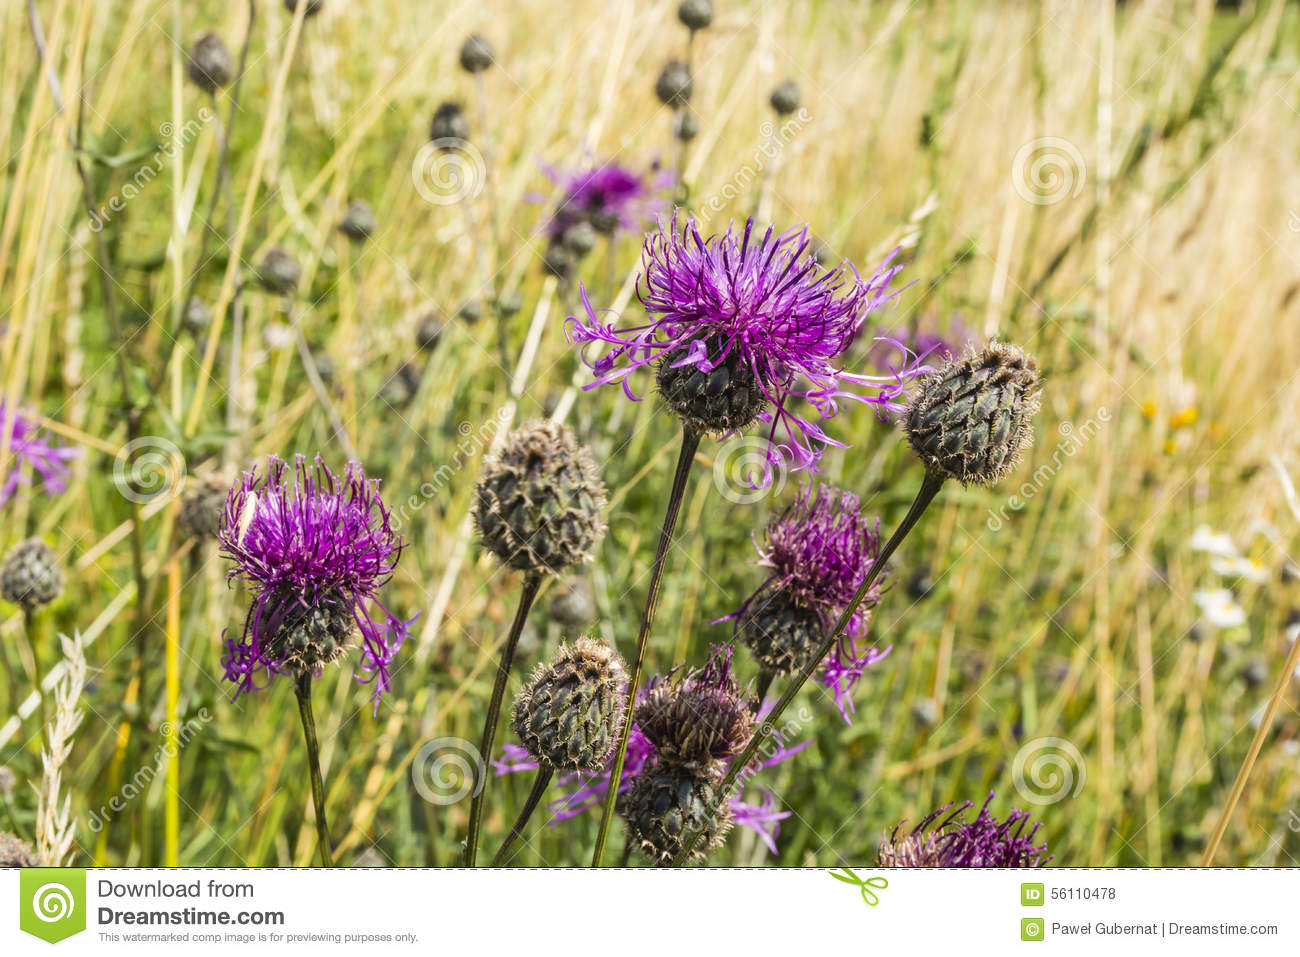 Perennial Plant Of The Asteraceae Family Stock Photo.